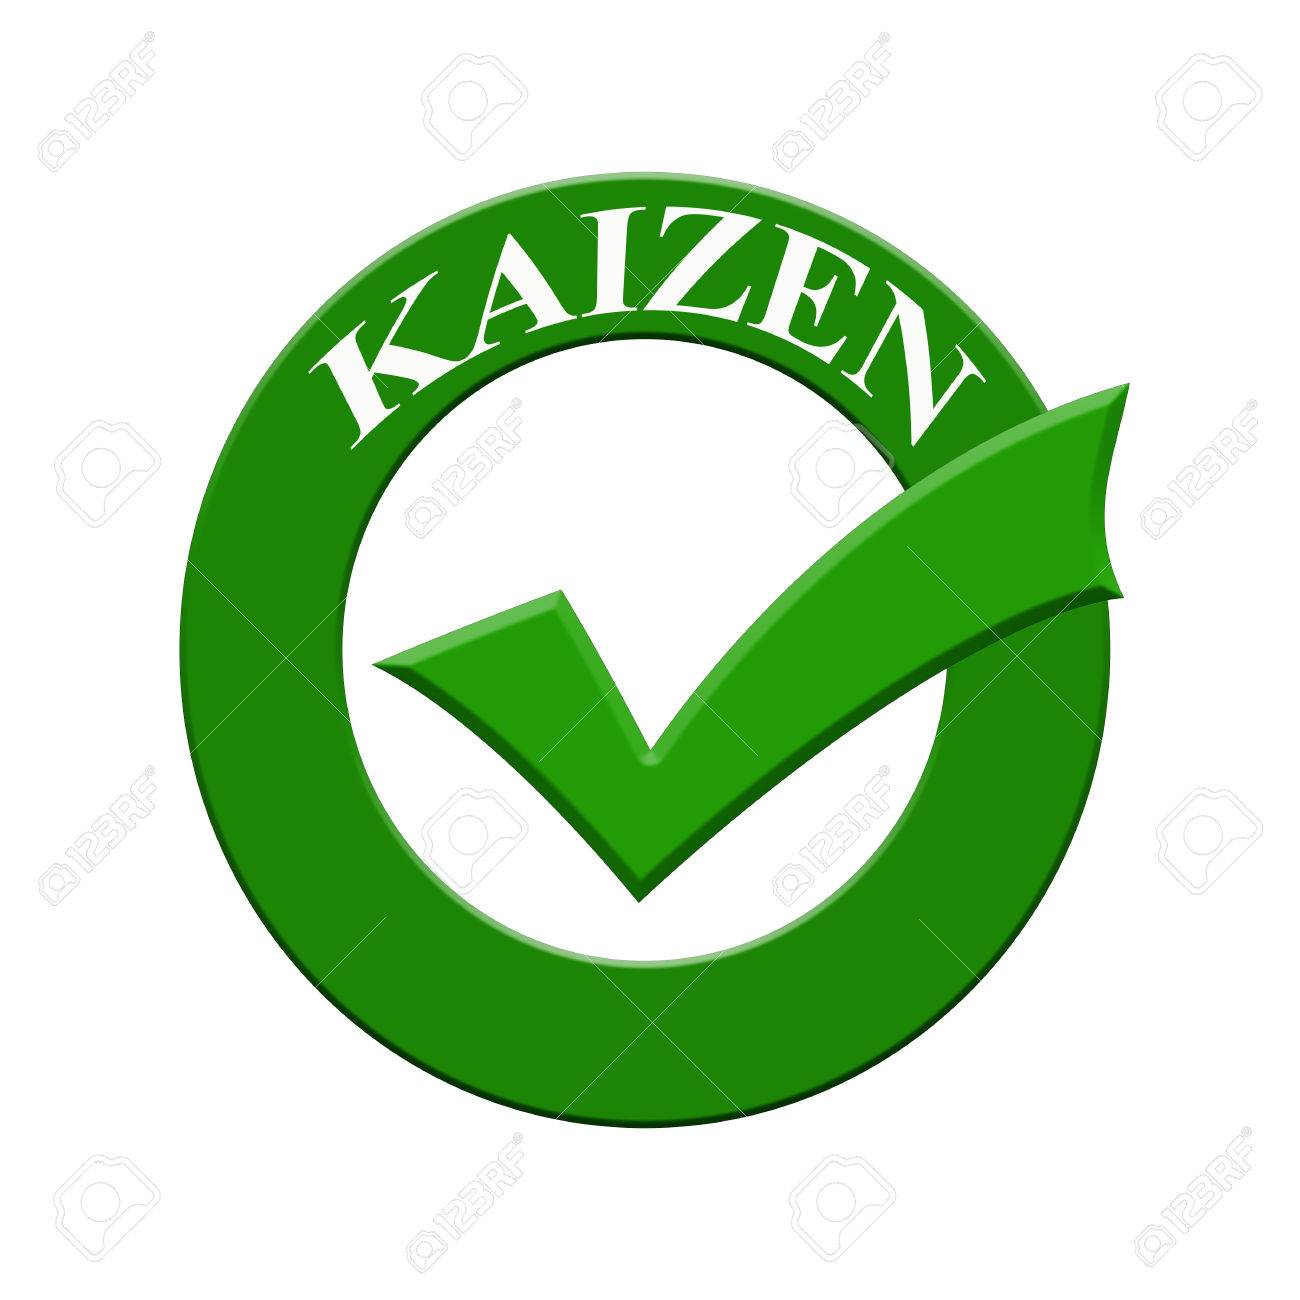 kaizen icon or symbol image concept design with business women